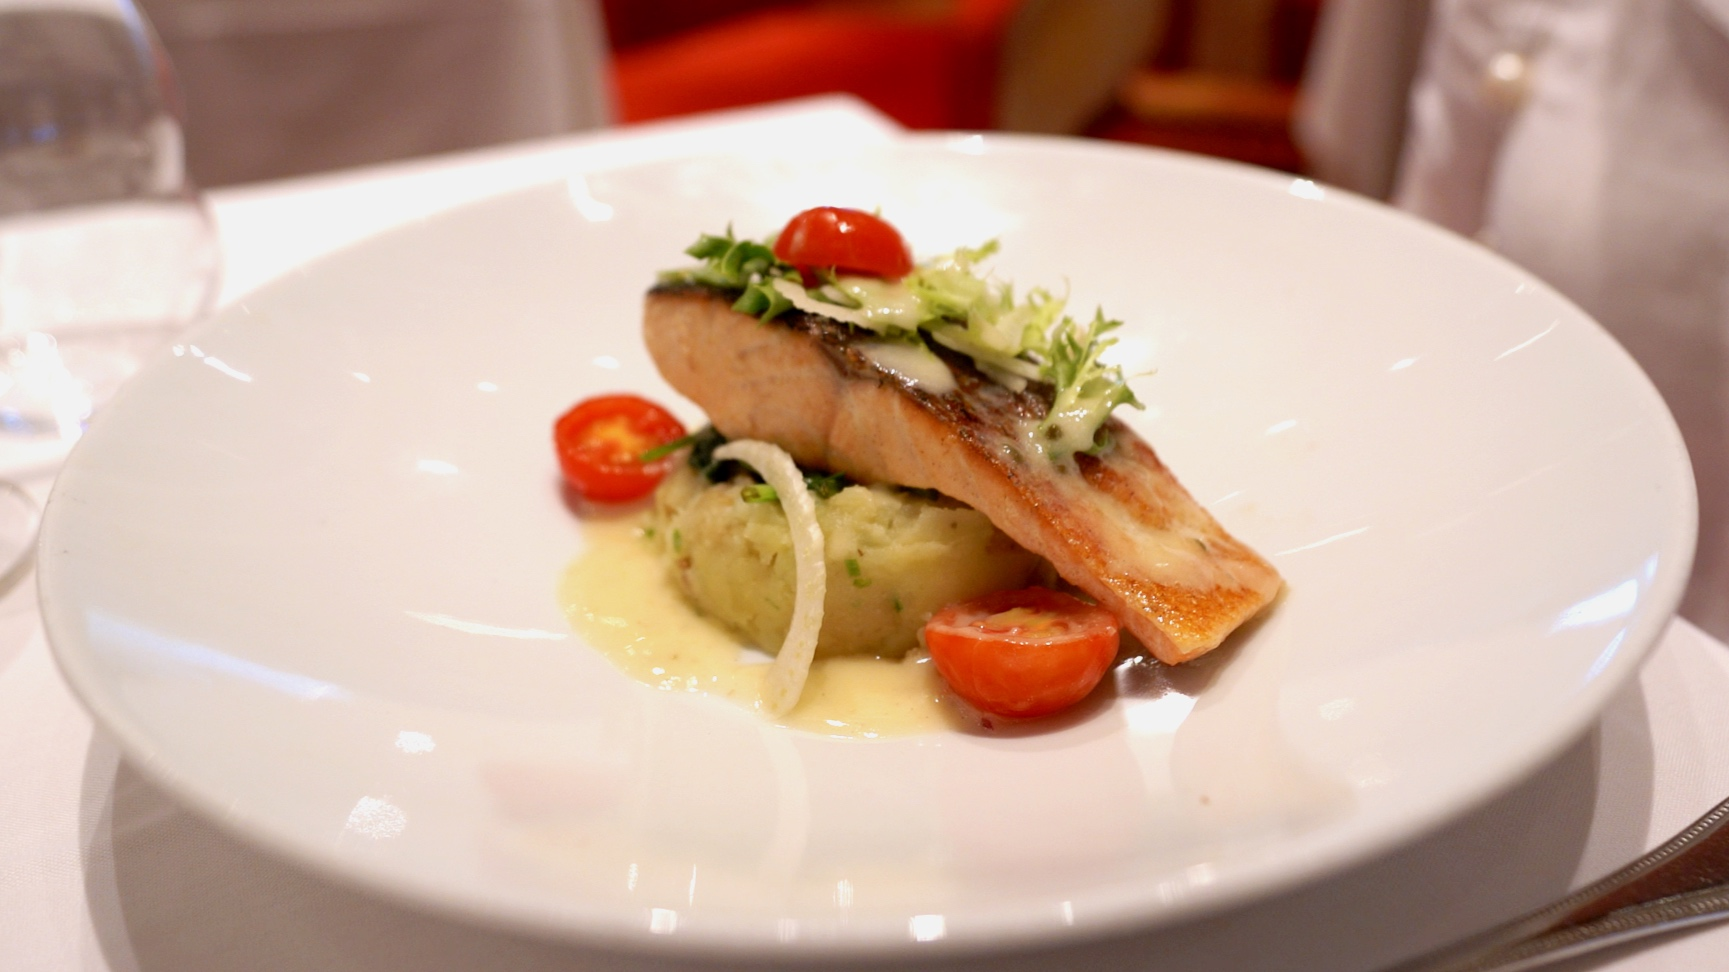 Our salmon lunch dish